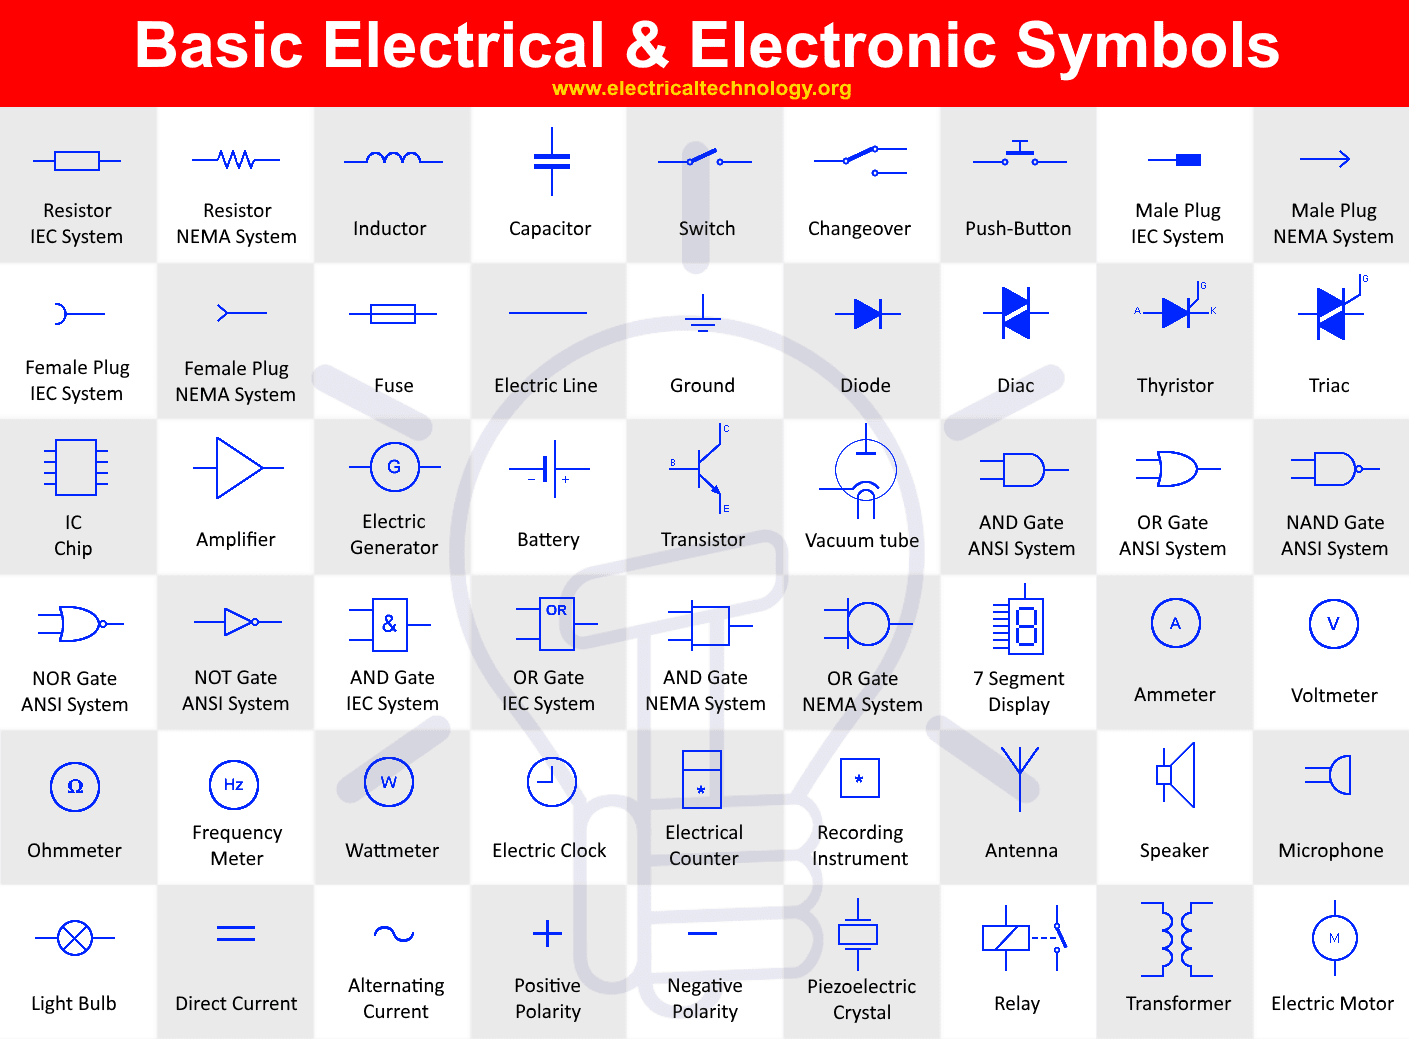 Basic Electrical and Electronic Symbols - Electrical TechnologyElectrical Technology